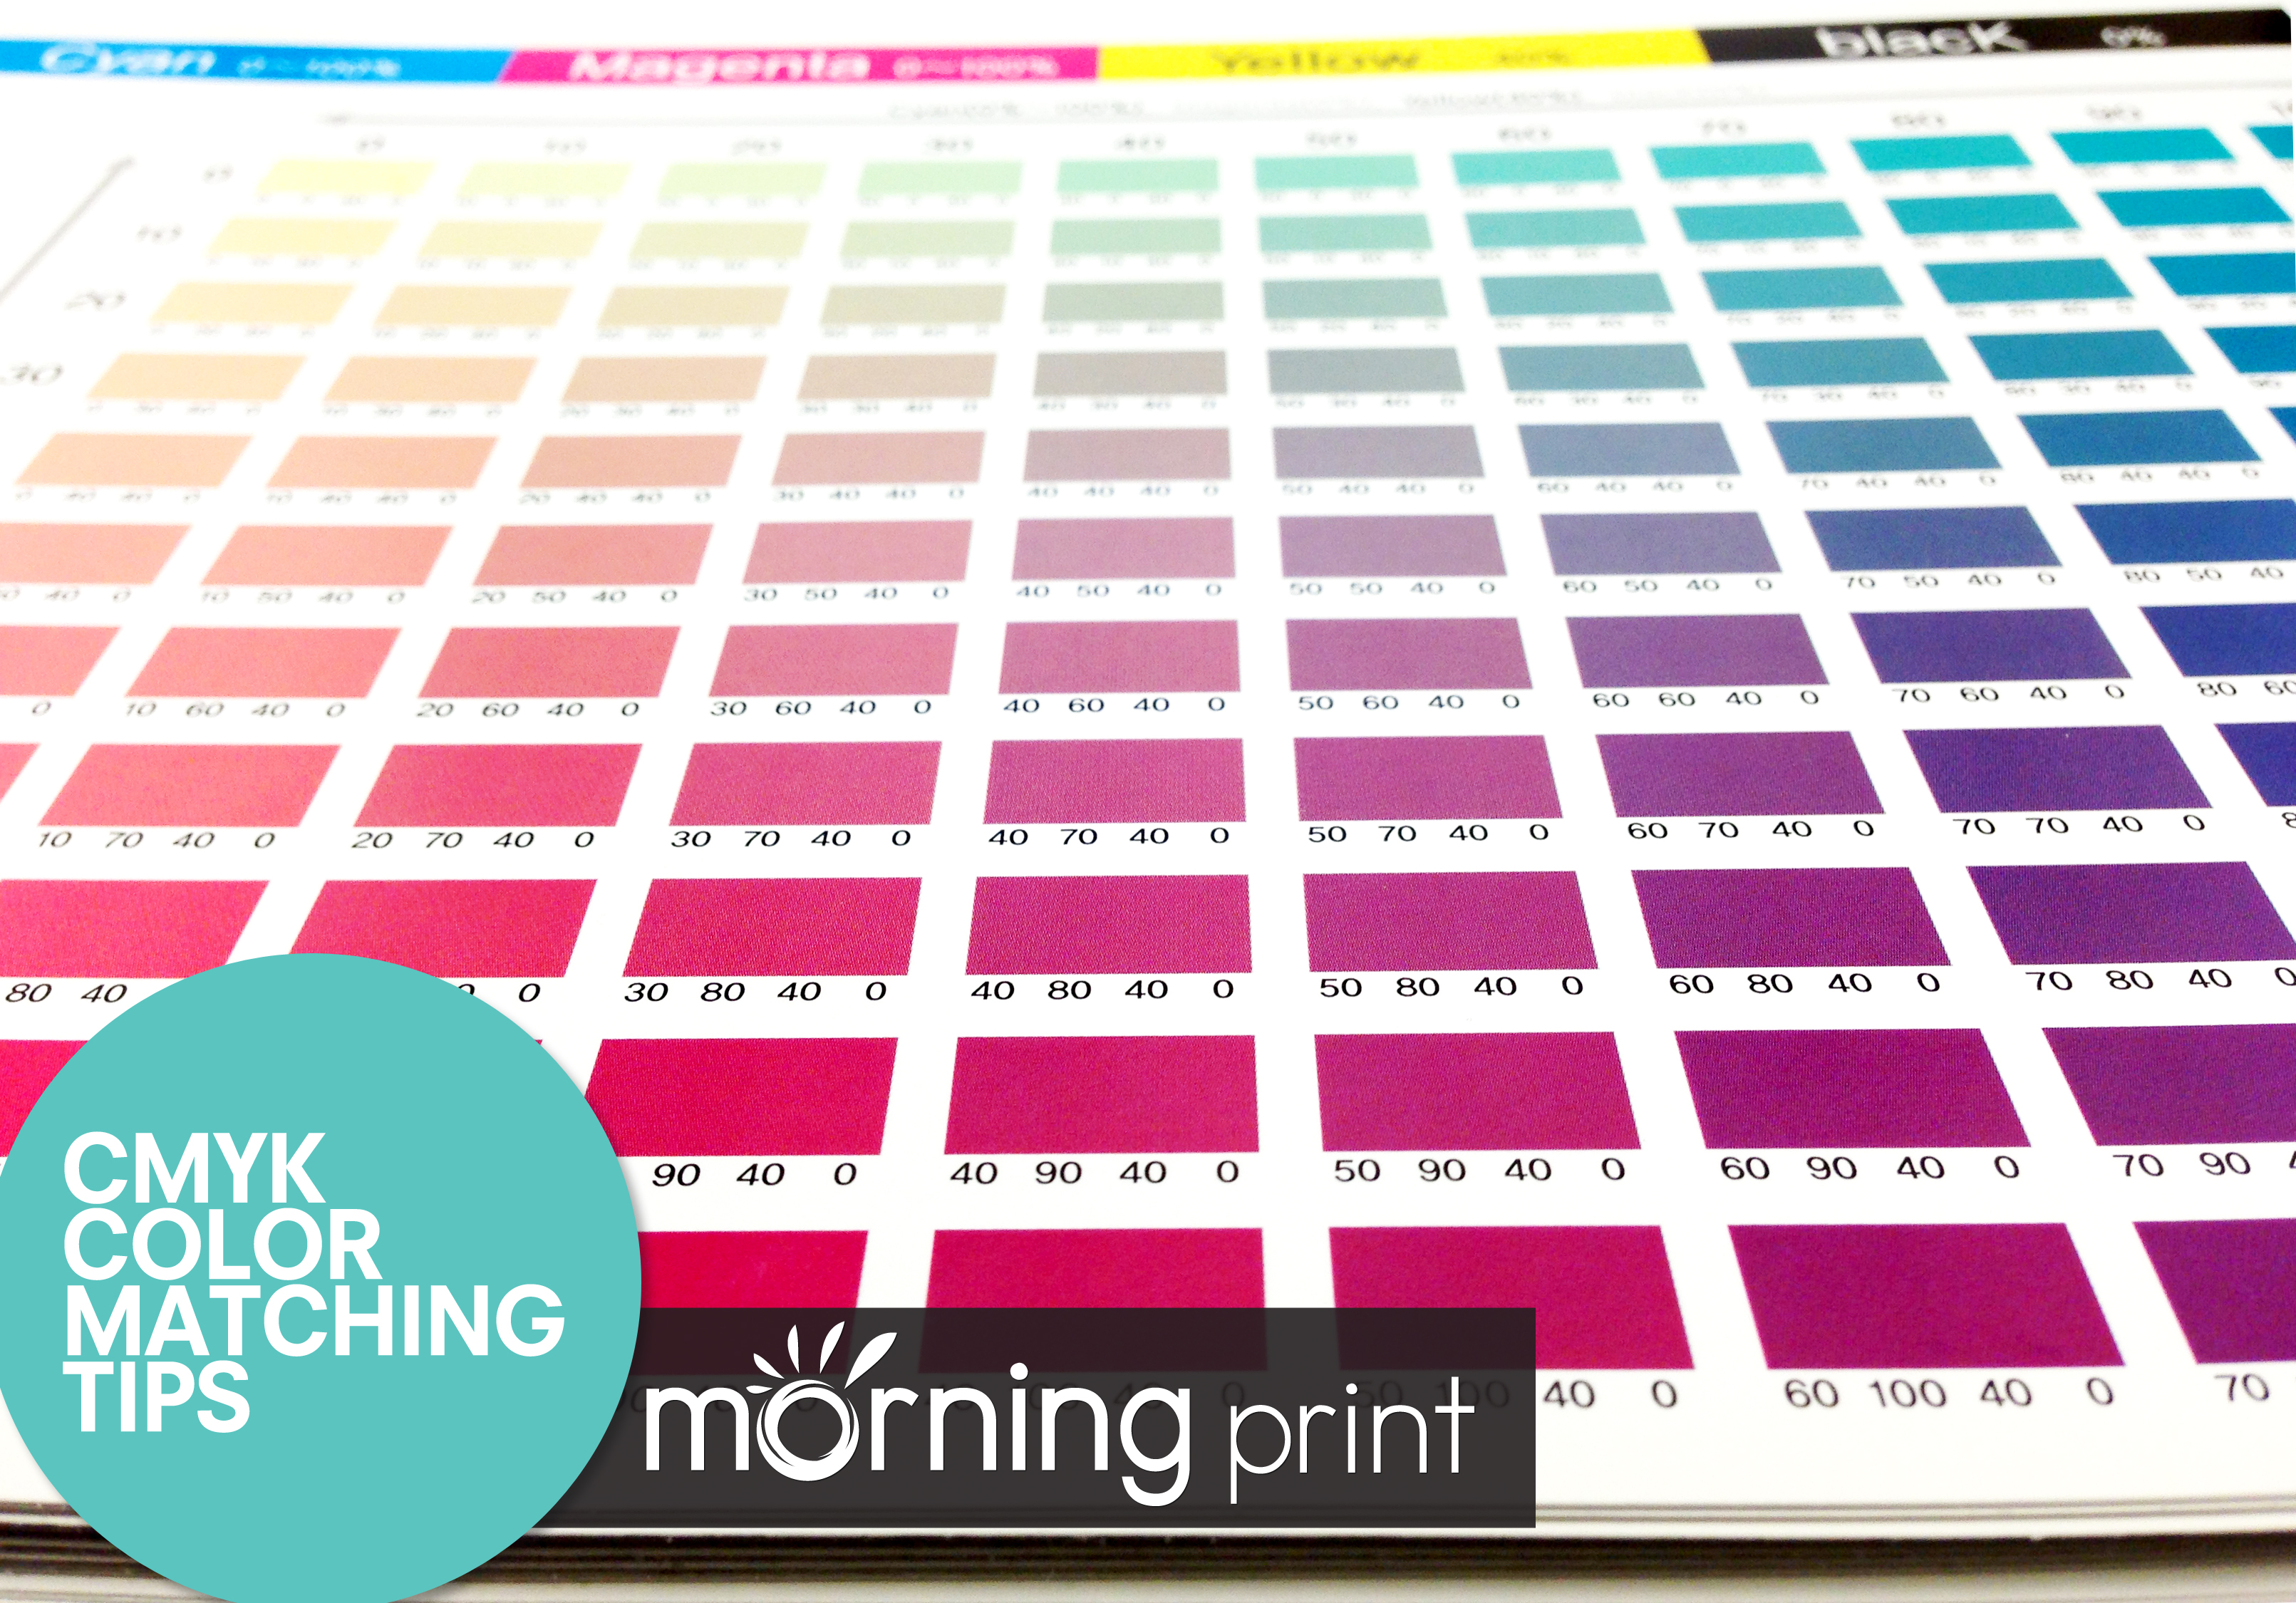 MorningPrint Hint CMYK Color Matching Tips